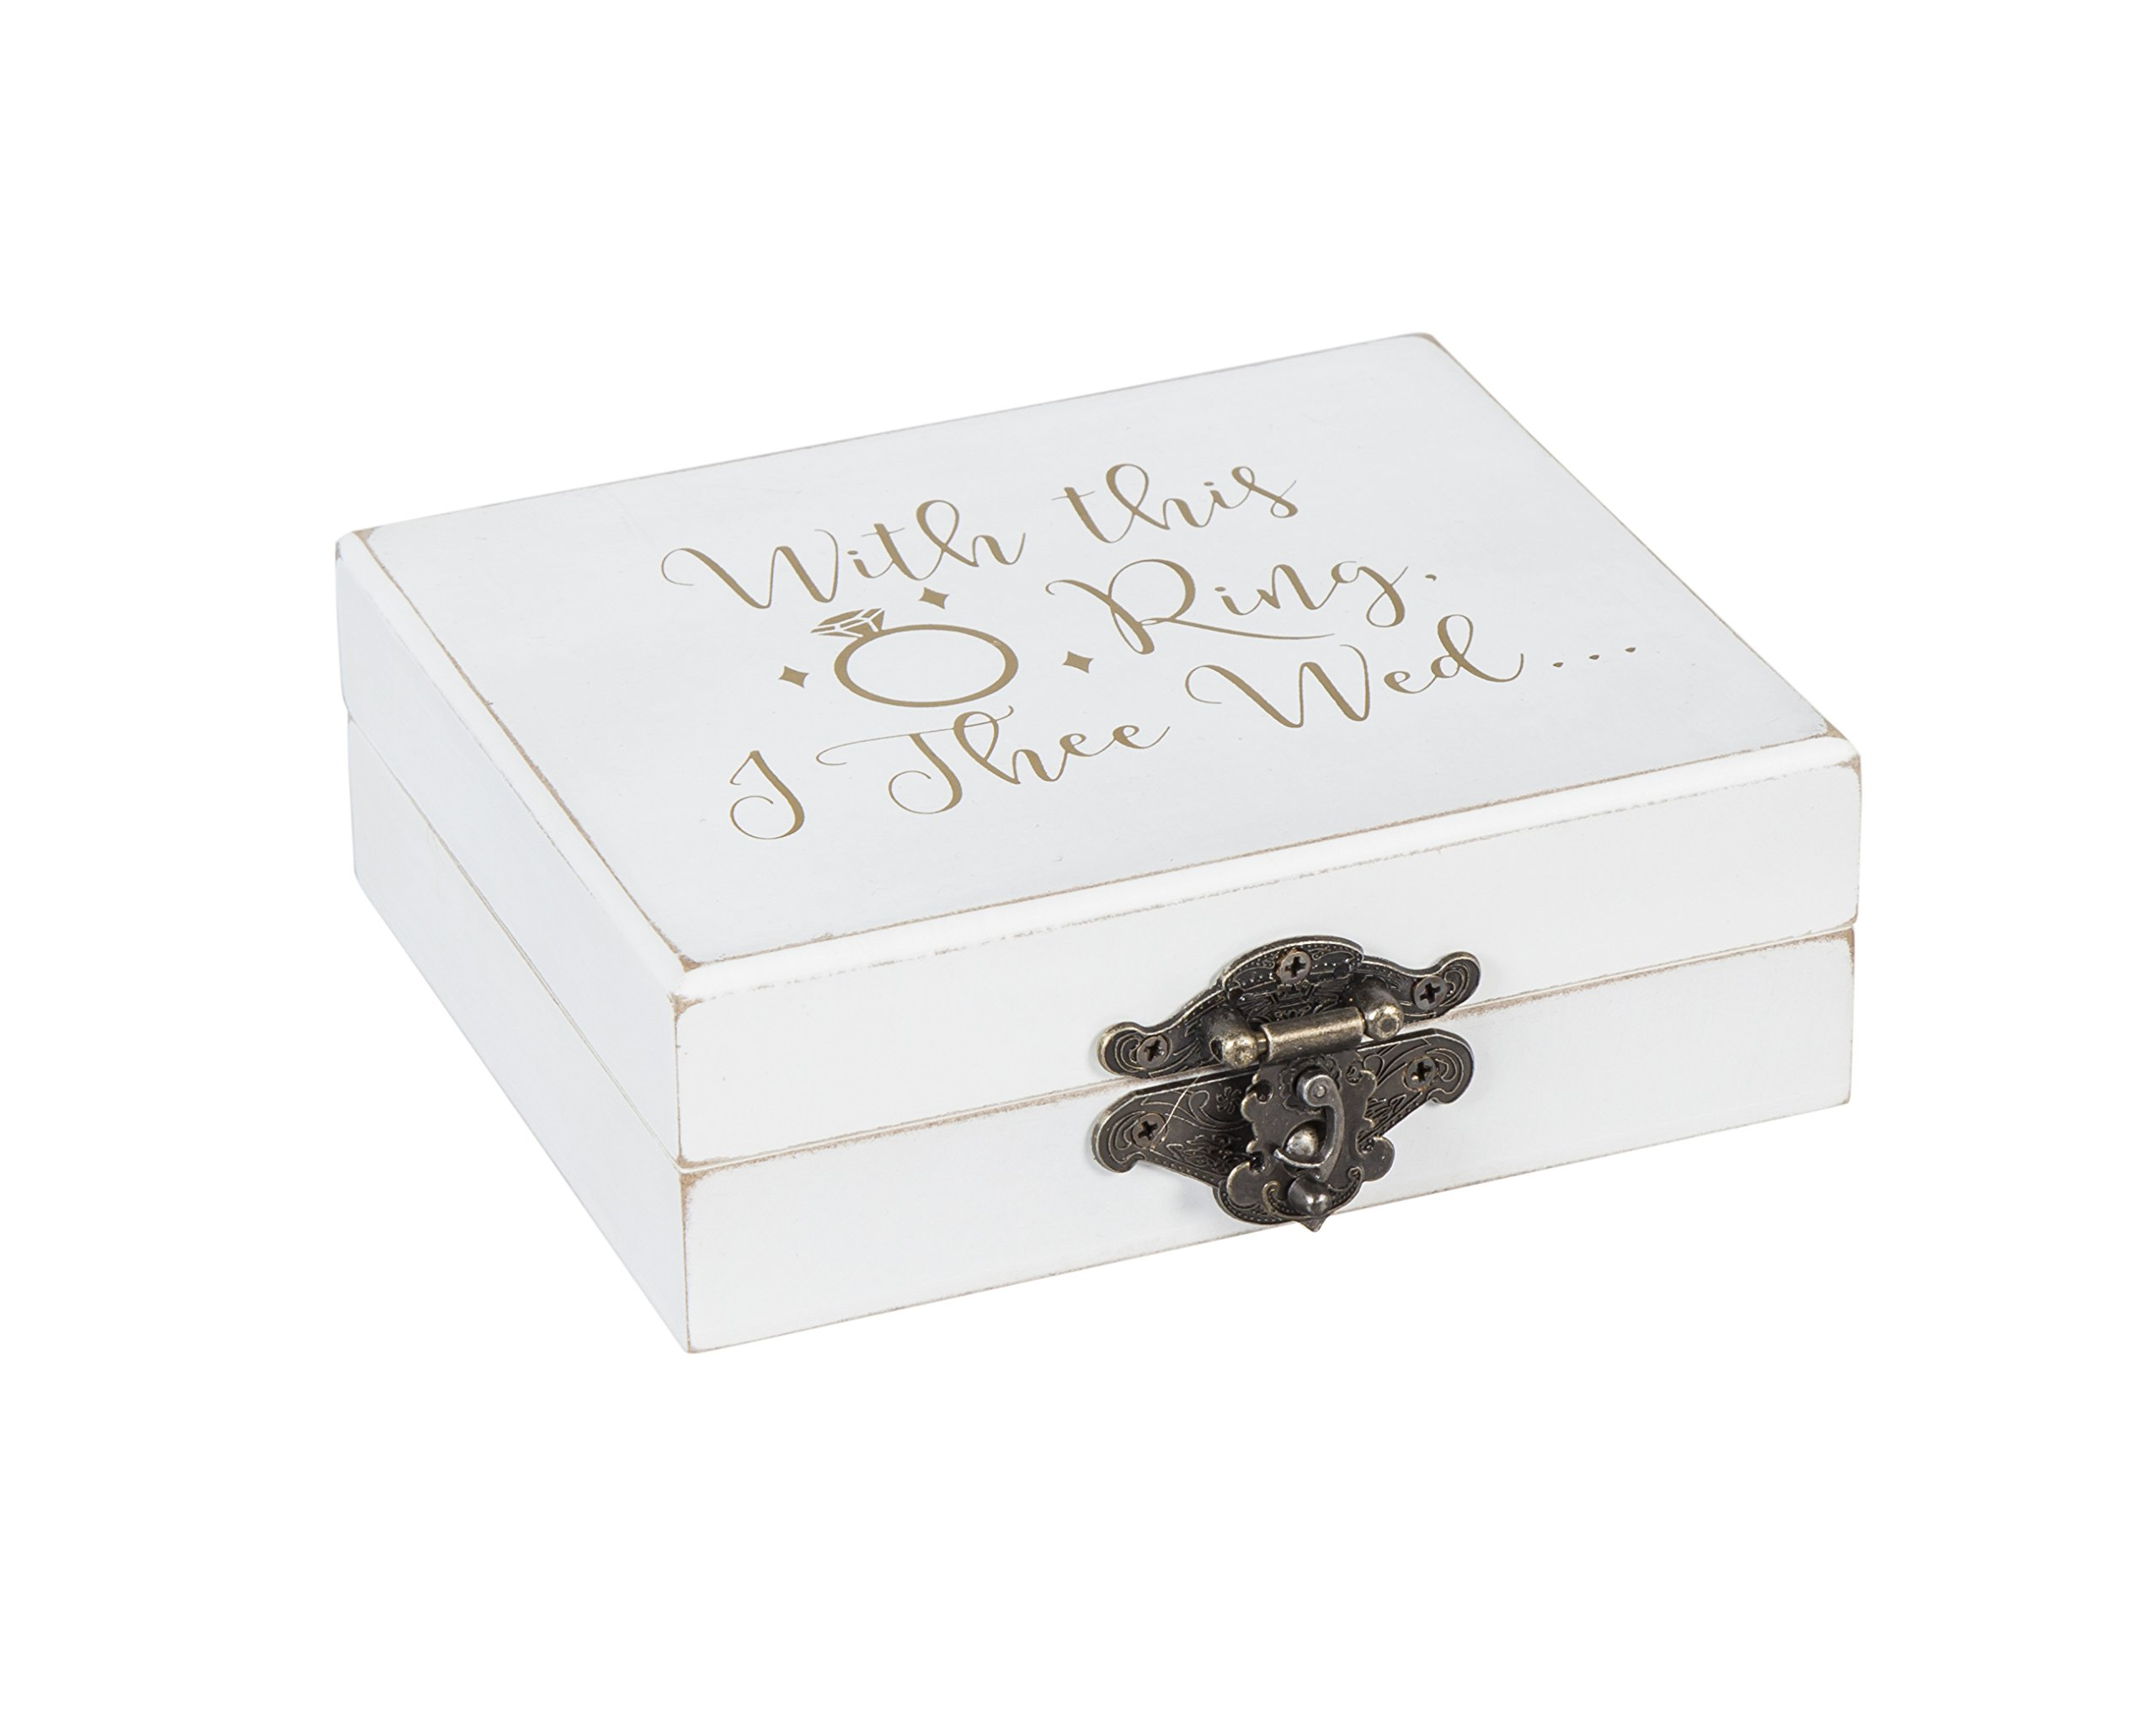 "Cypress Home With This Ring, I Thee Wed Mr. and Mrs. Wooden Ring Holder Decorative Box - 5""W x 6""D x 2""H"